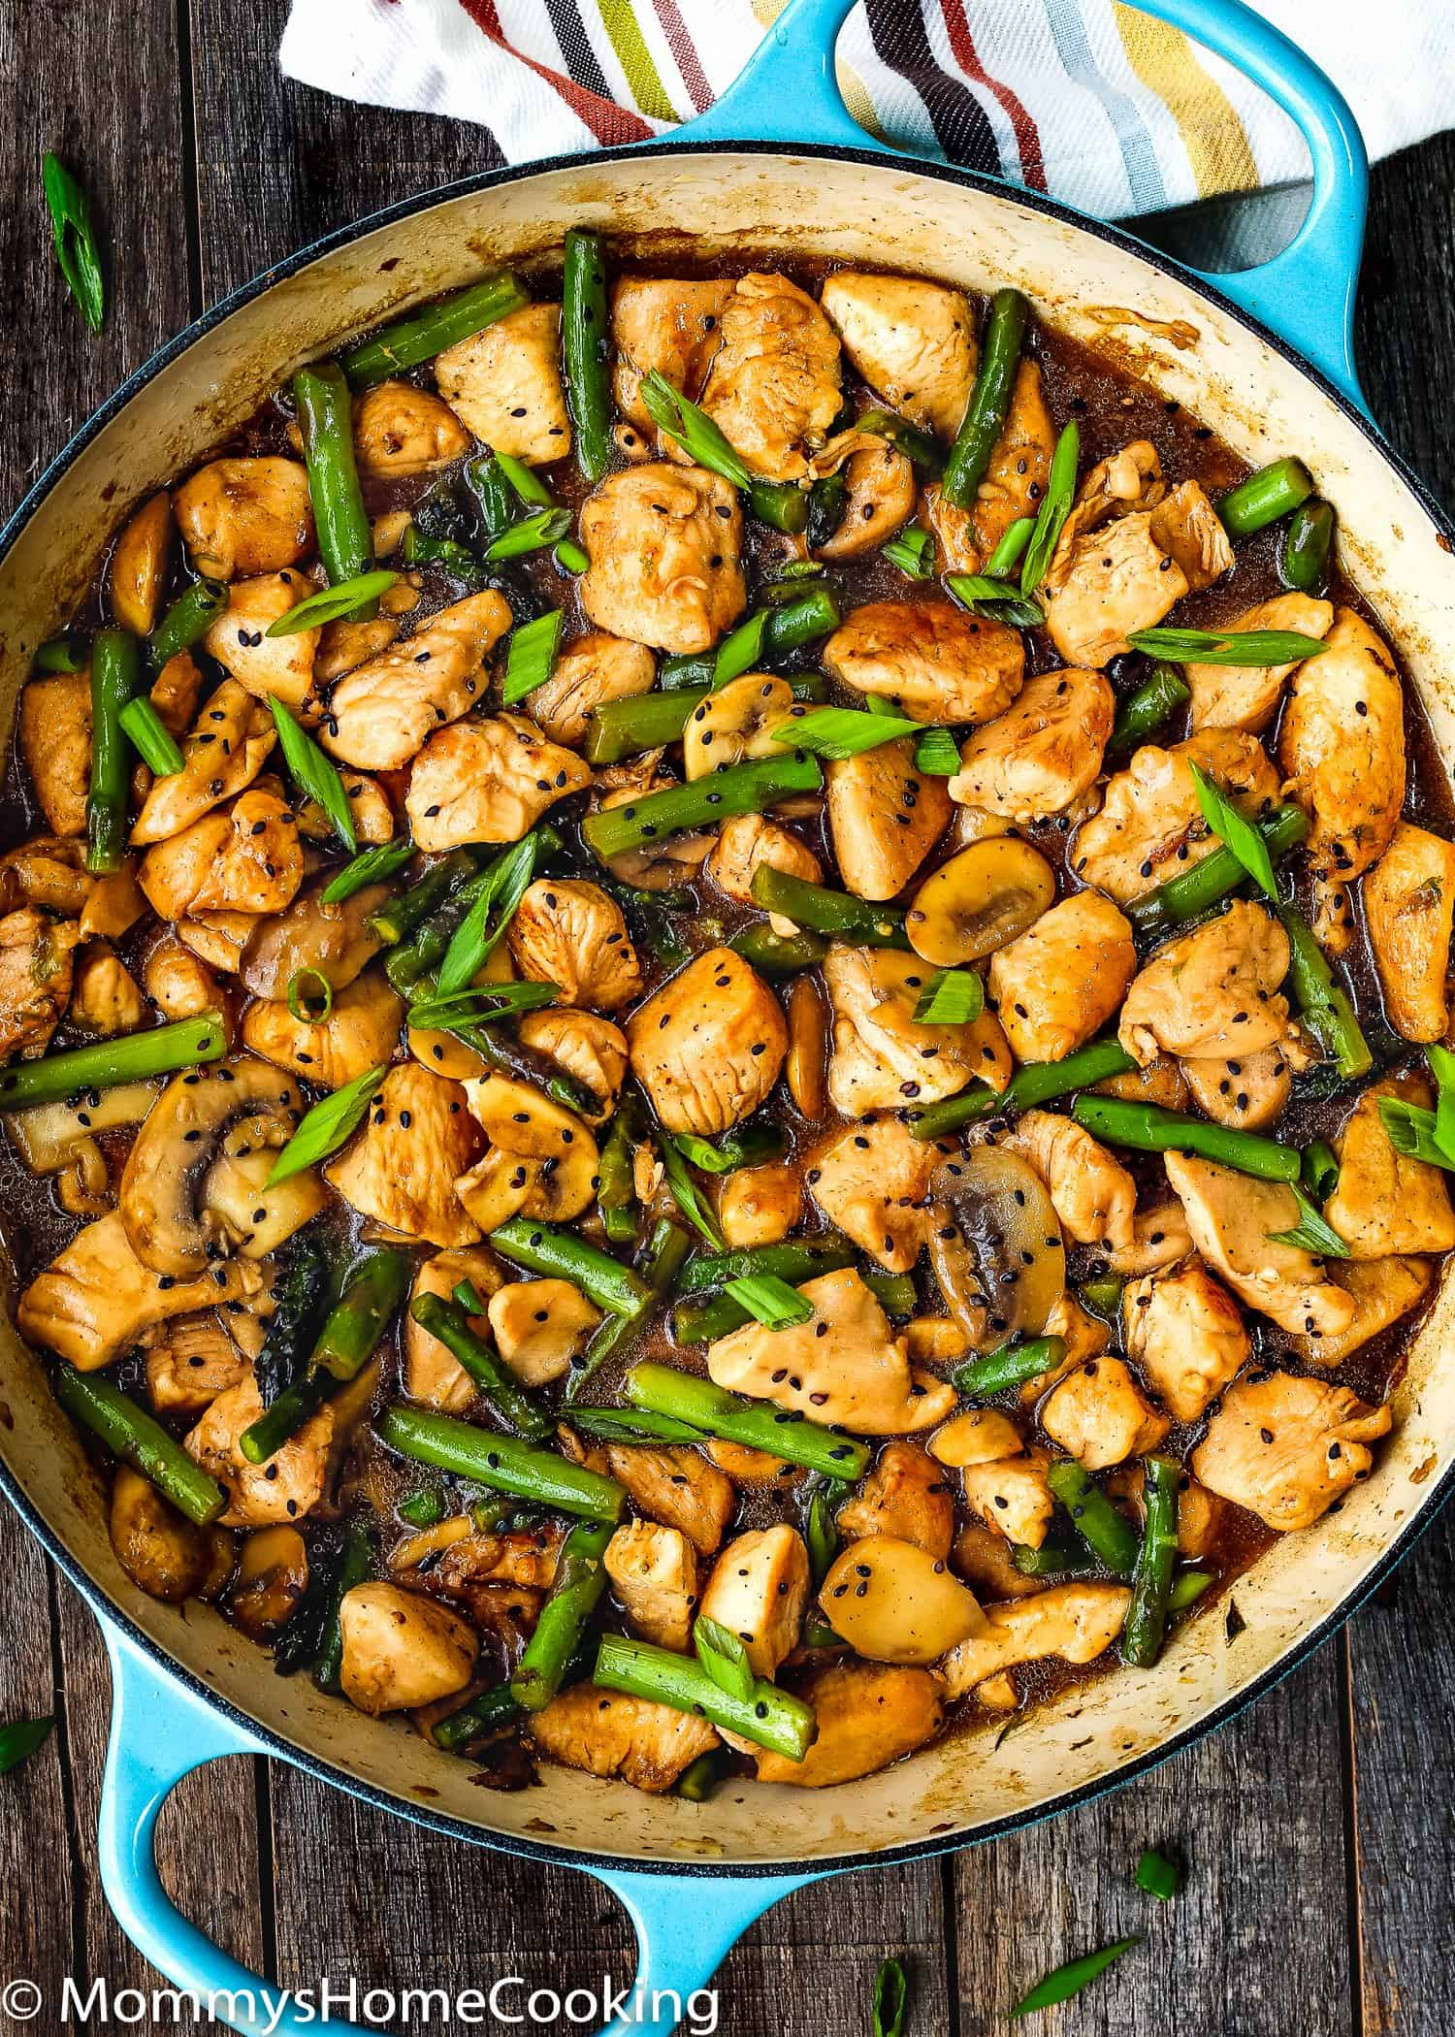 Easy Healthy Chicken and Asparagus Skillet - dinner recipes to lower cholesterol